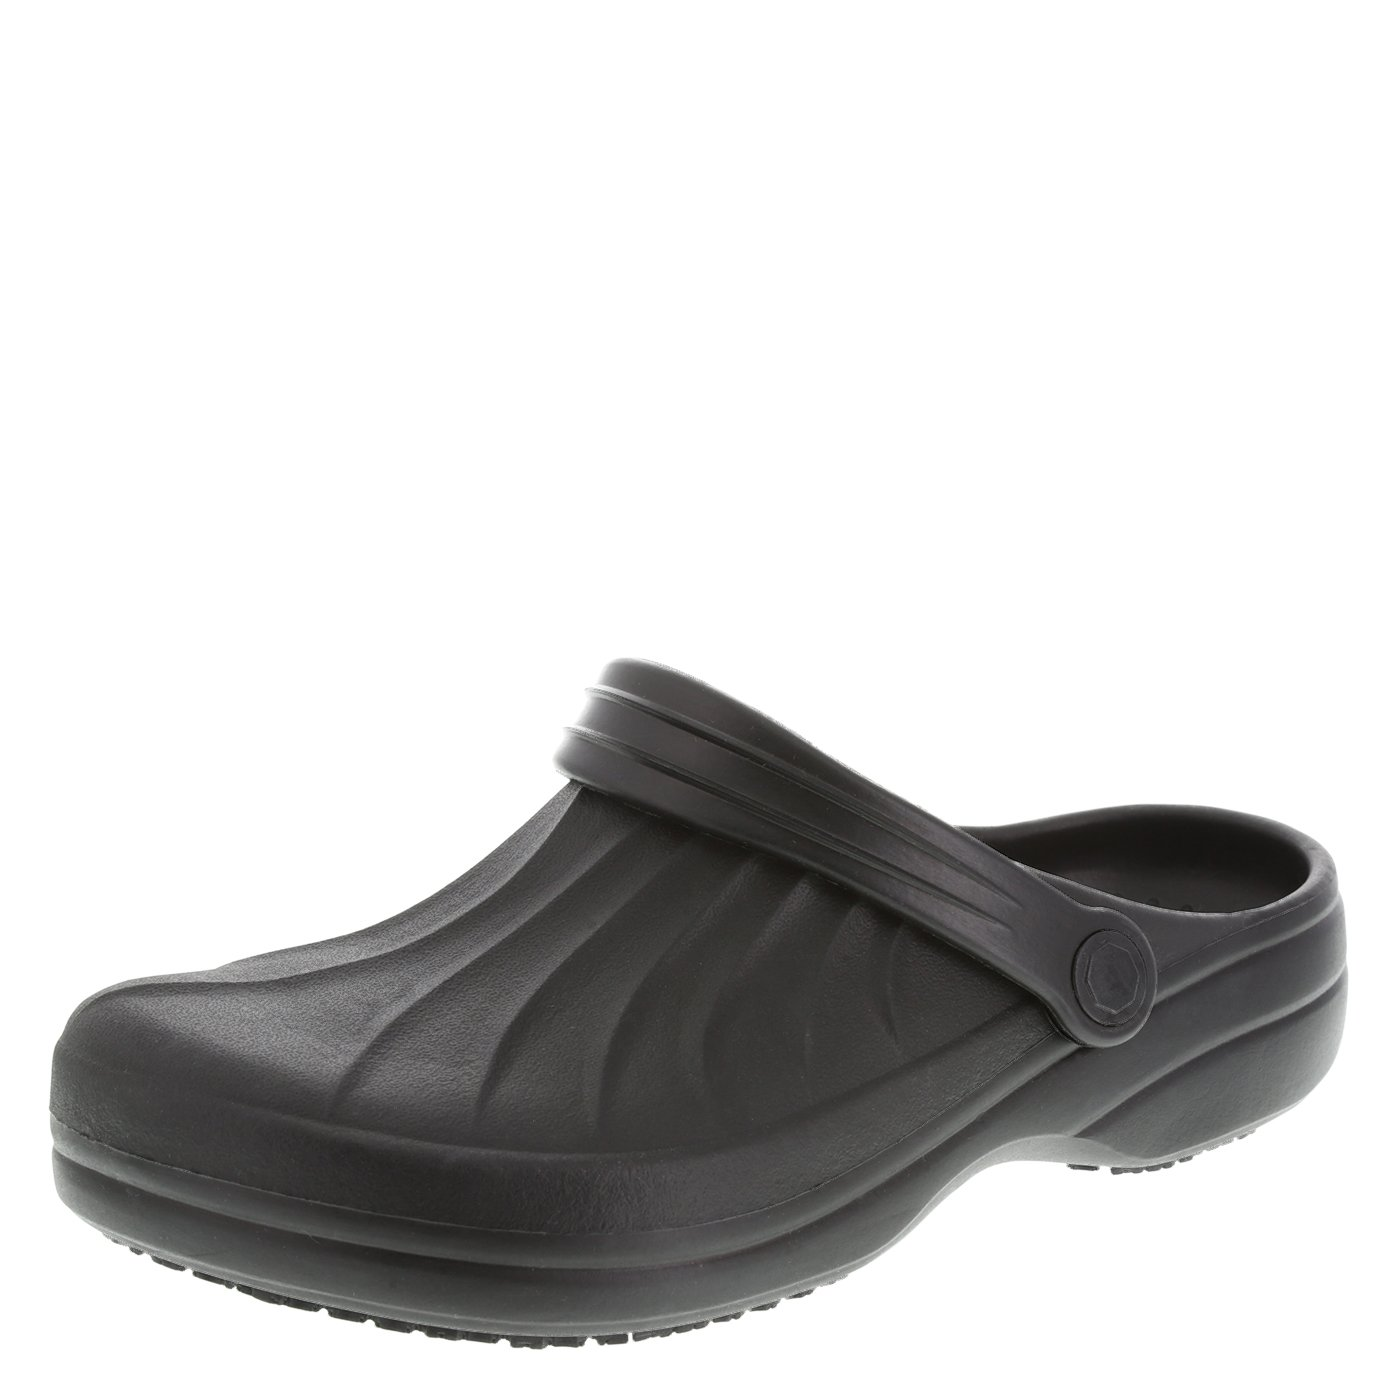 safeTstep Women's Black Slip Resistant Complete Clog 9 Regular